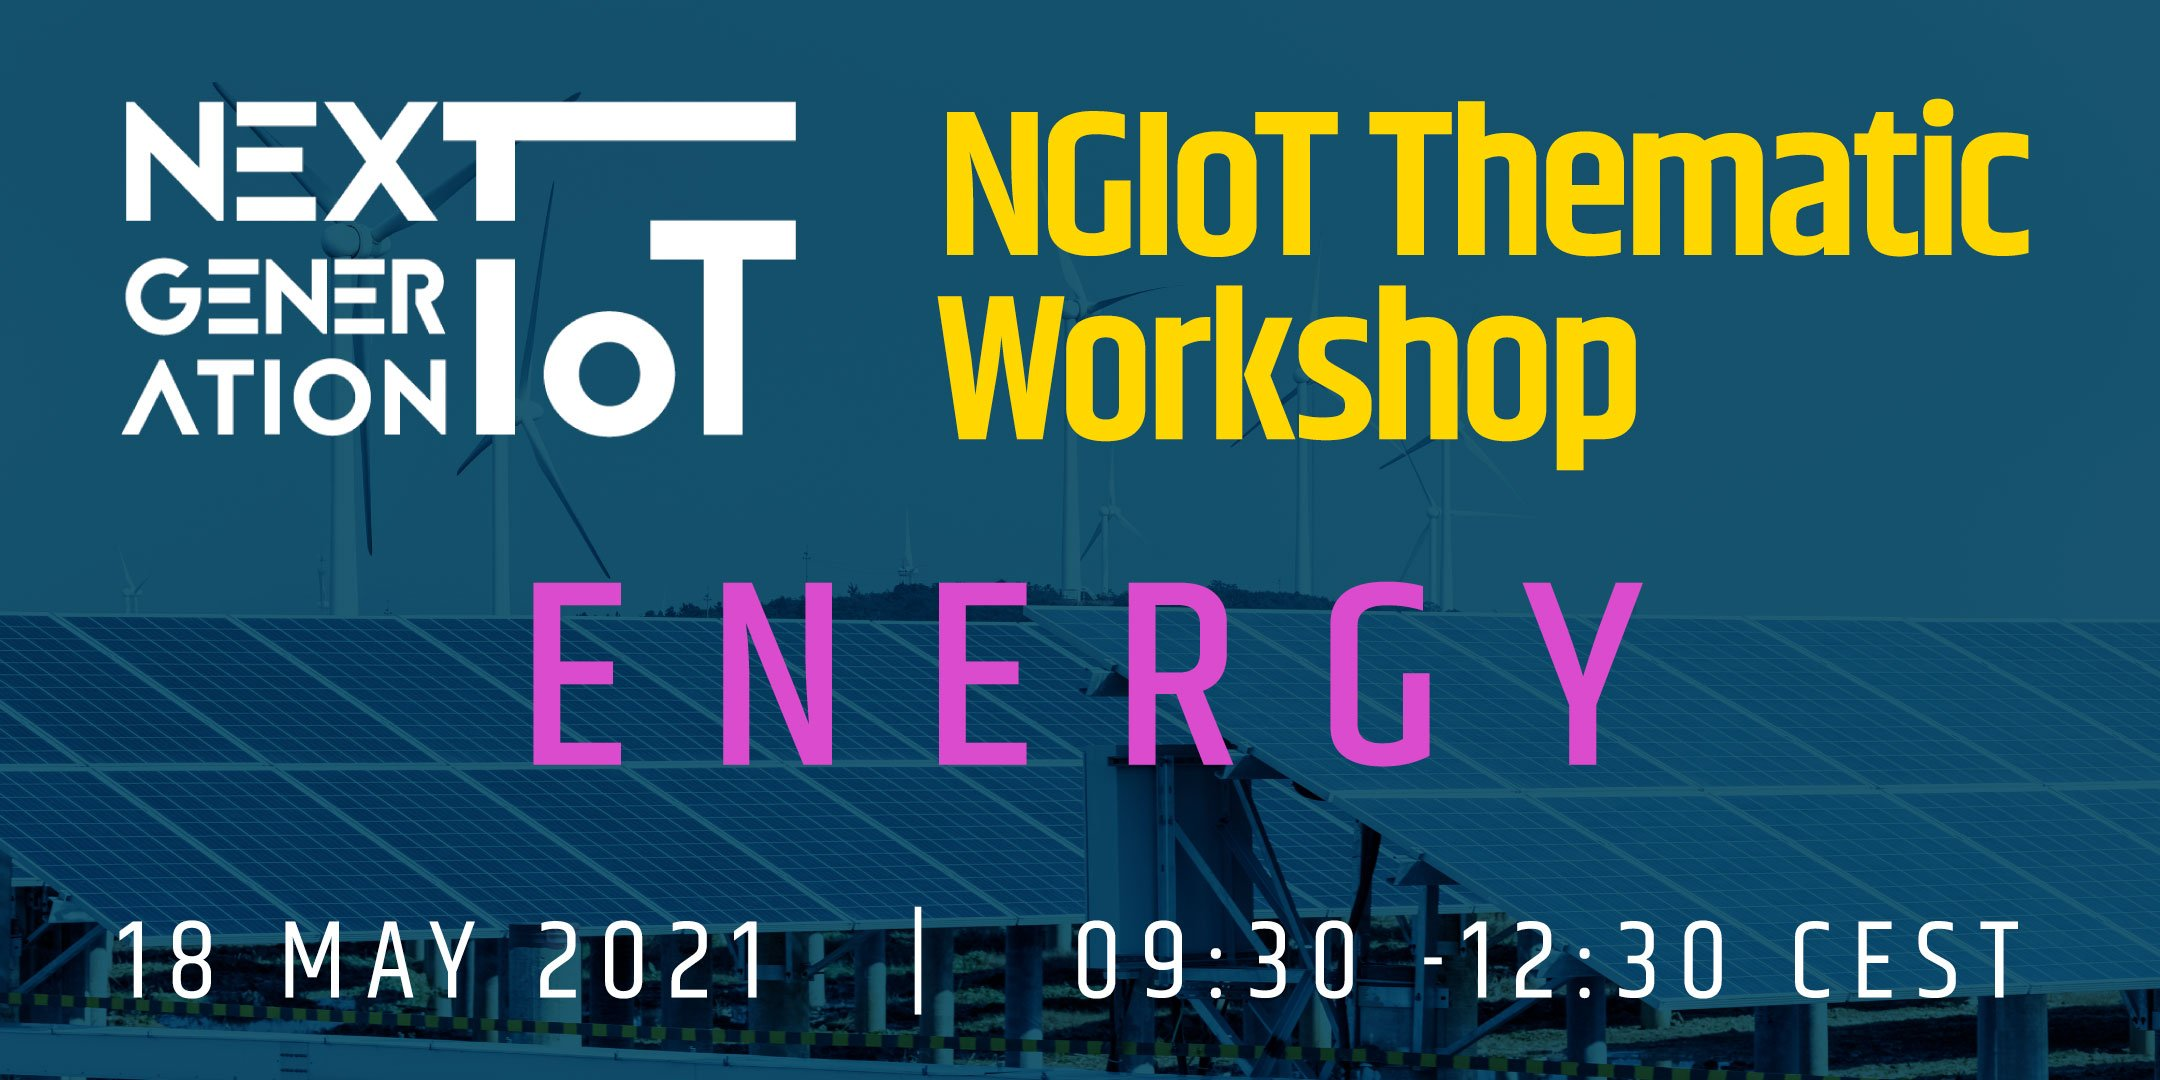 NGIoT Thematic Workshop: Energy @ Online